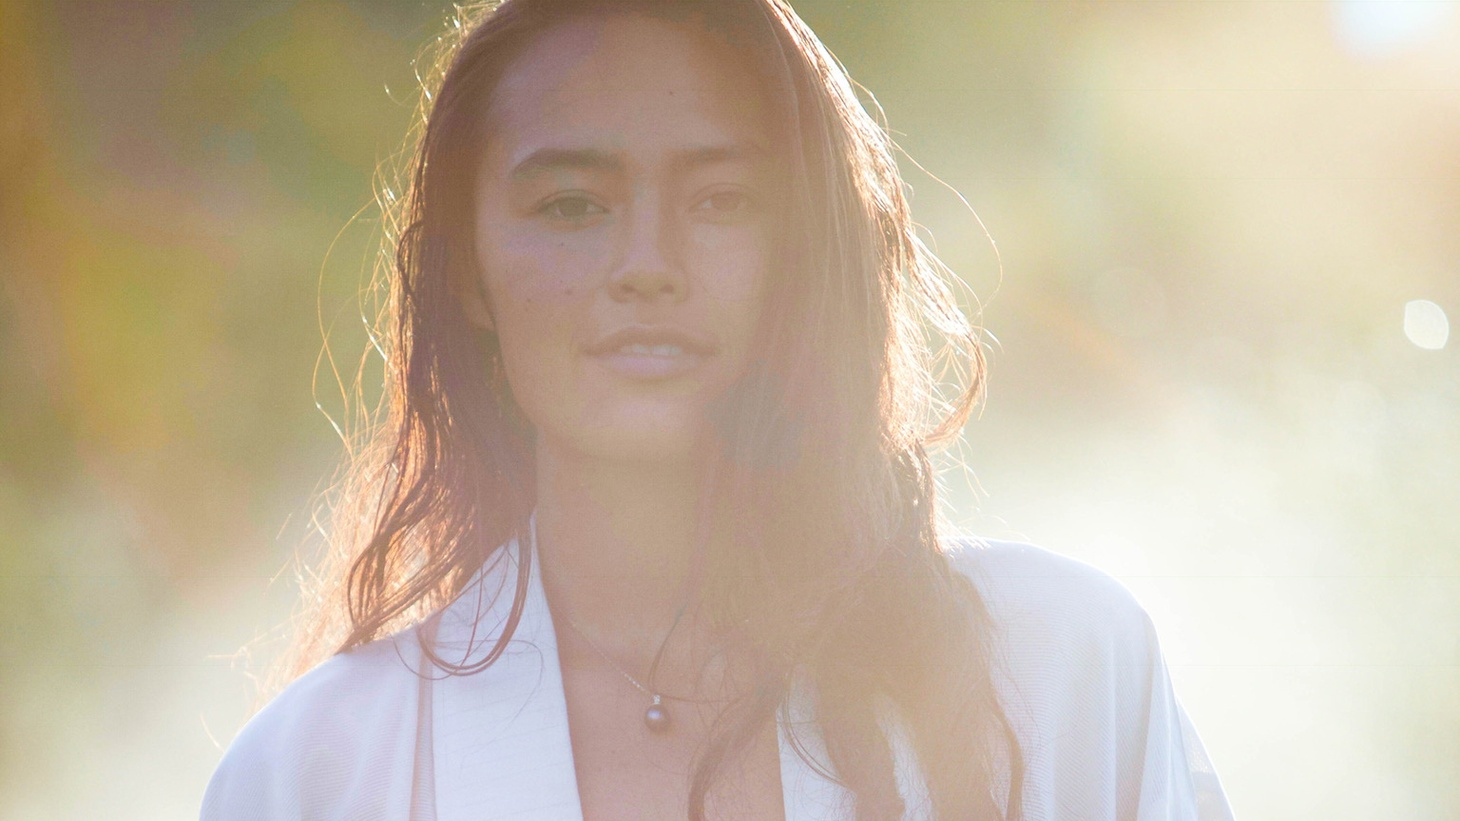 """Singer/songwriter Ash grew up in the lush landscape of Oahu and is now an organic farmer in British Colombia. Focused on sustainability and growth, Ash plants seeds of love through her song """"Lover Friend."""""""